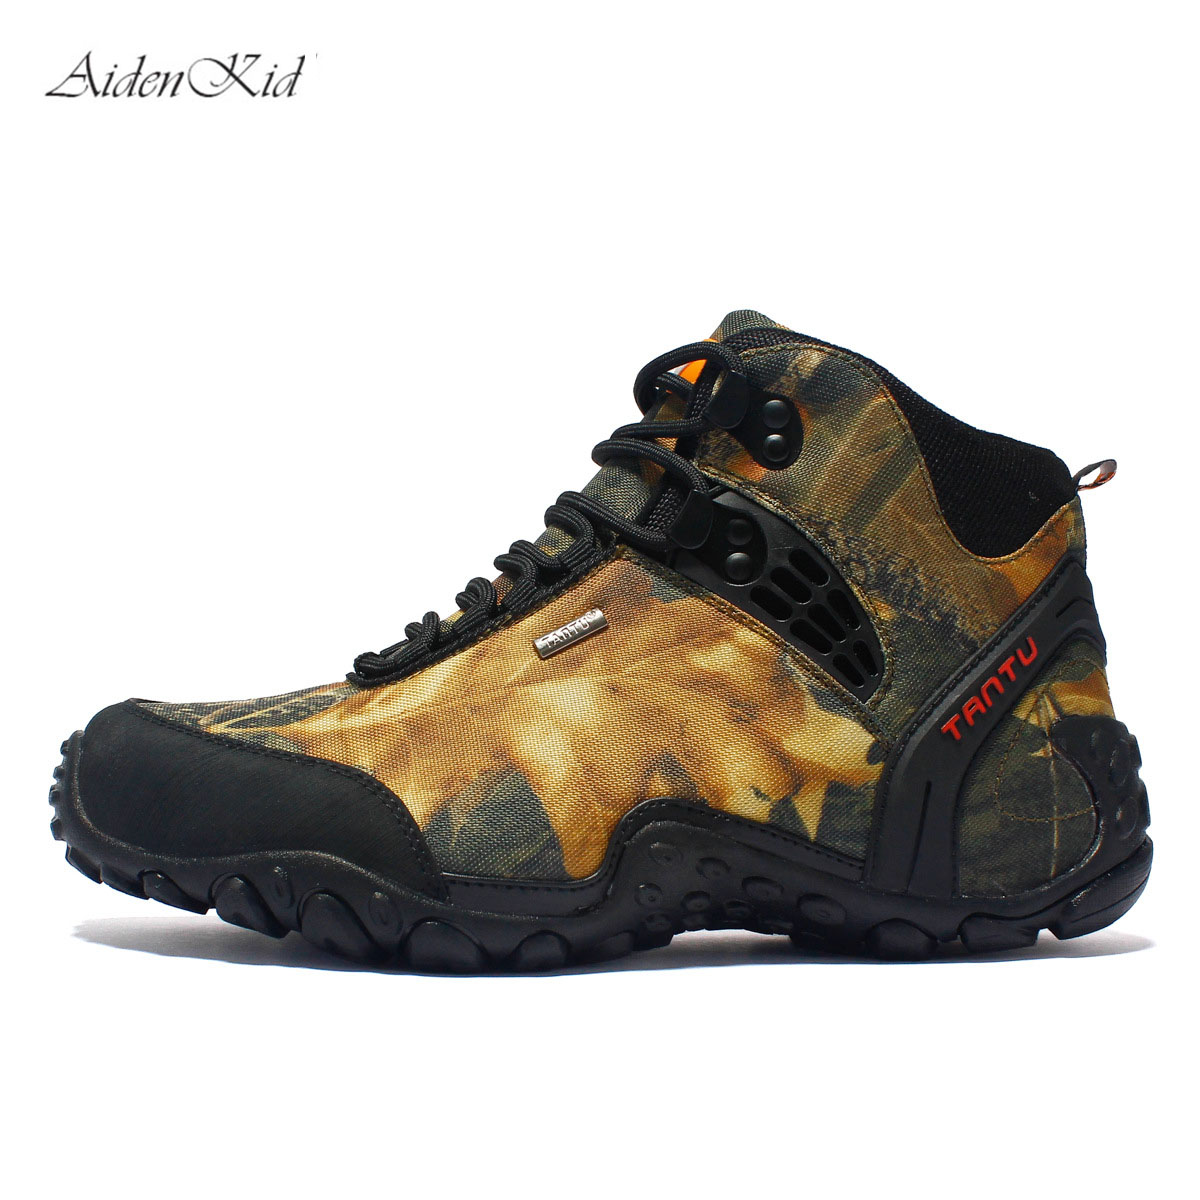 Spring and summer new men's casual shoes outdoor shoes high to help walking shoes men's hiking shoes large size